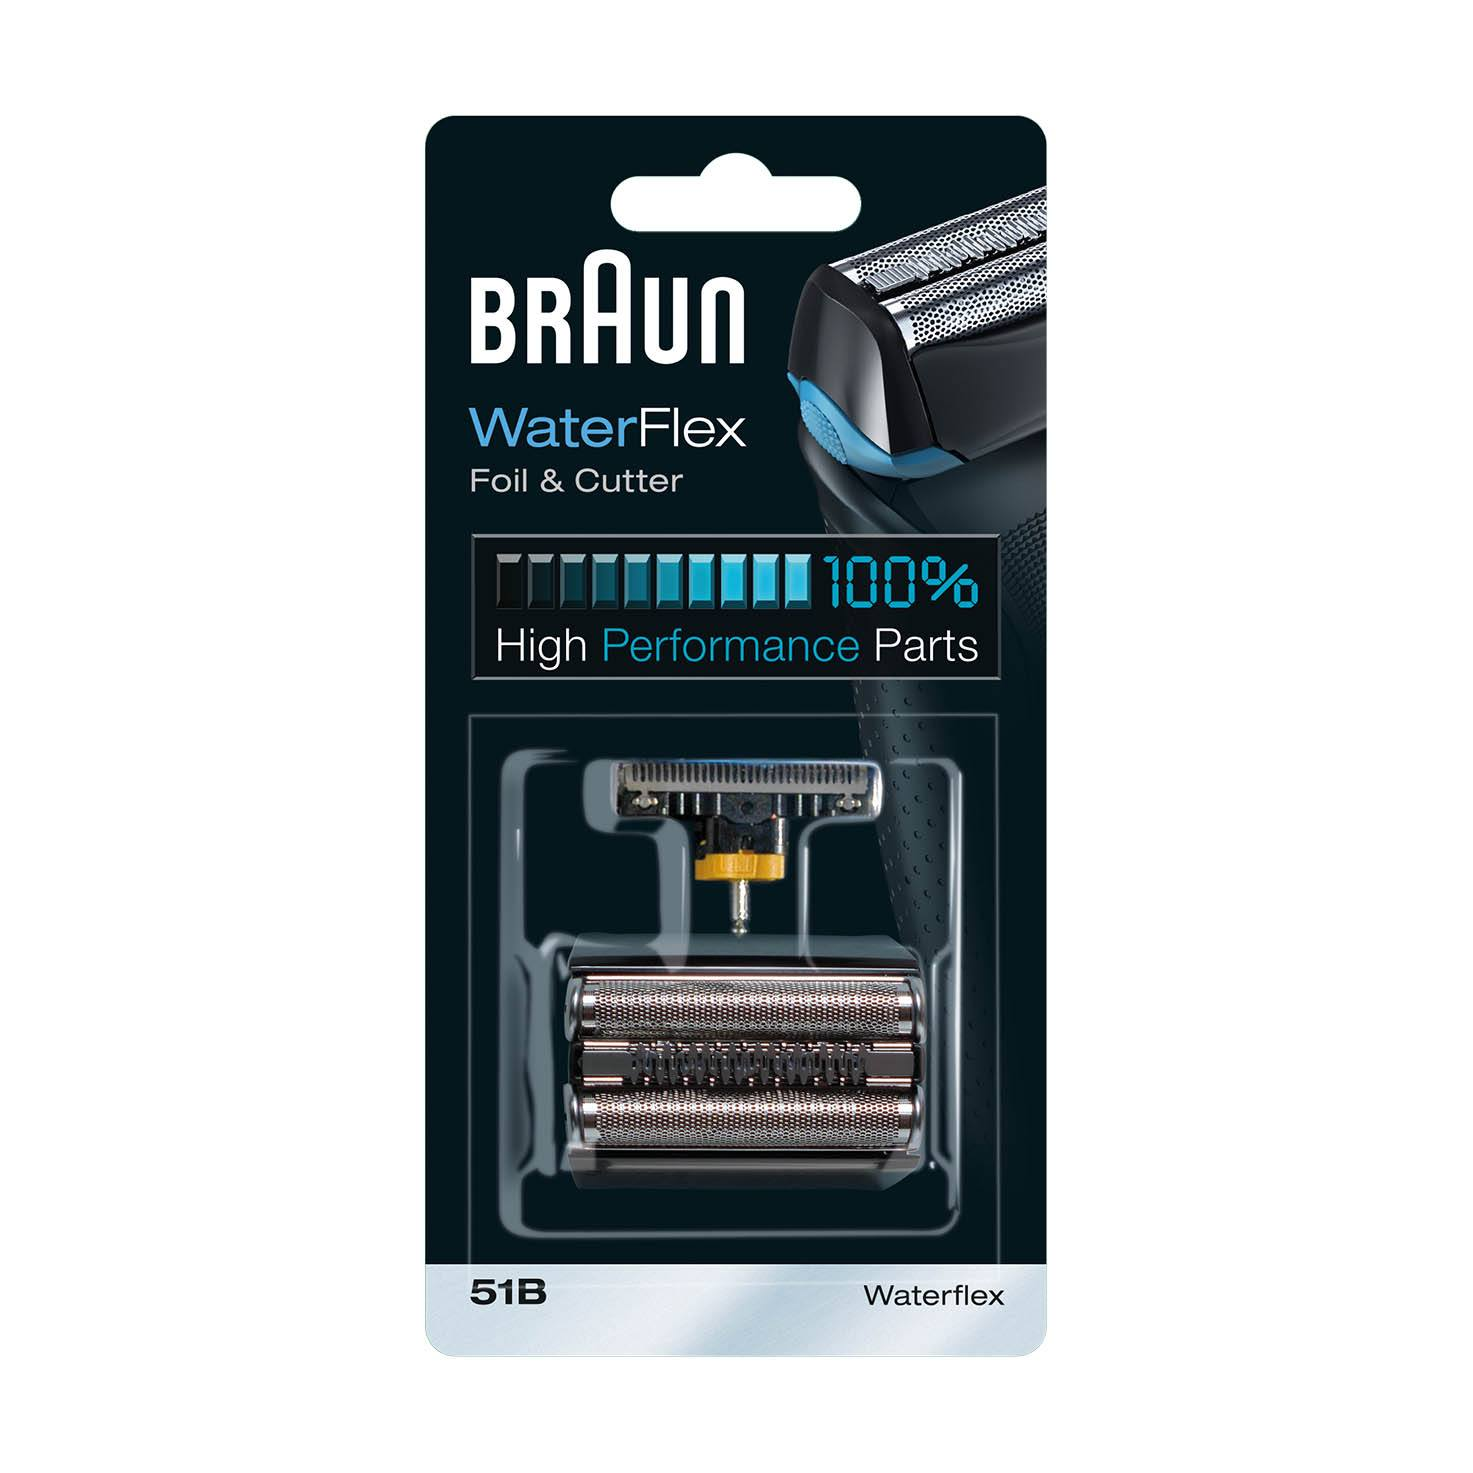 Braun Waterflex Combi 51B Foil and Cutter Replacement pack